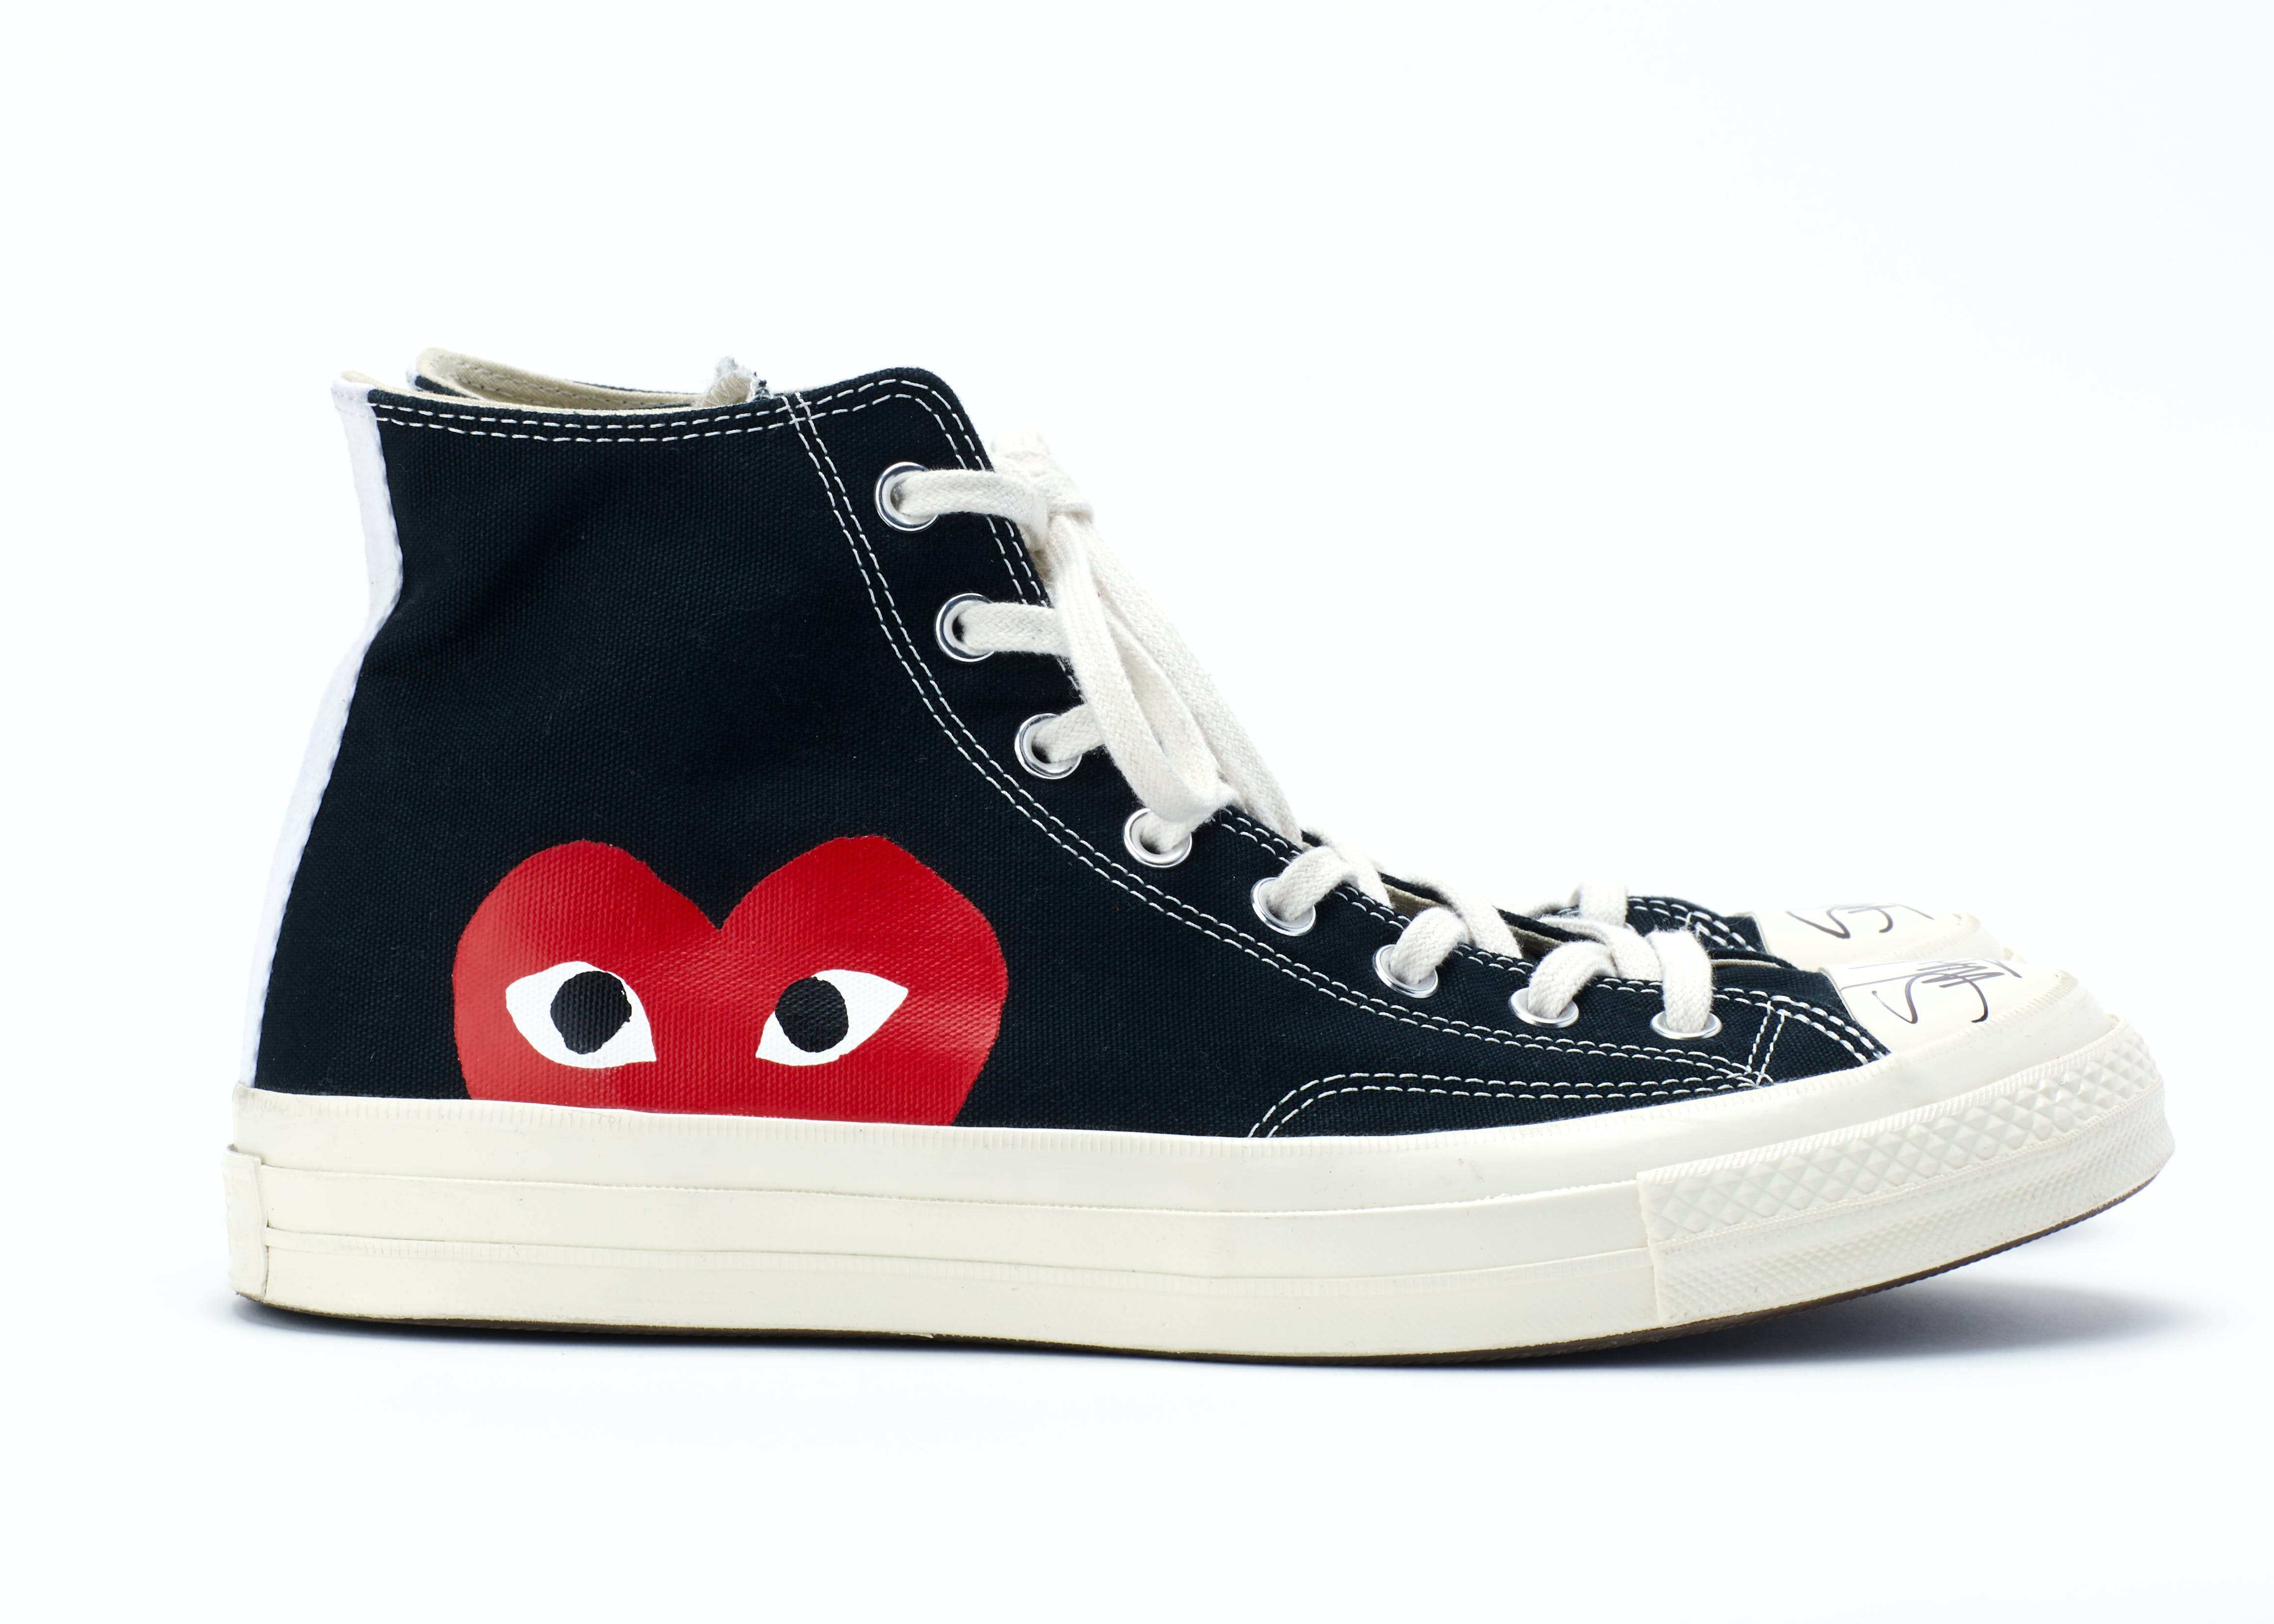 info for 1e23a 18eec Converse Chuck Taylor Comme Des Garcons - signed by Sway